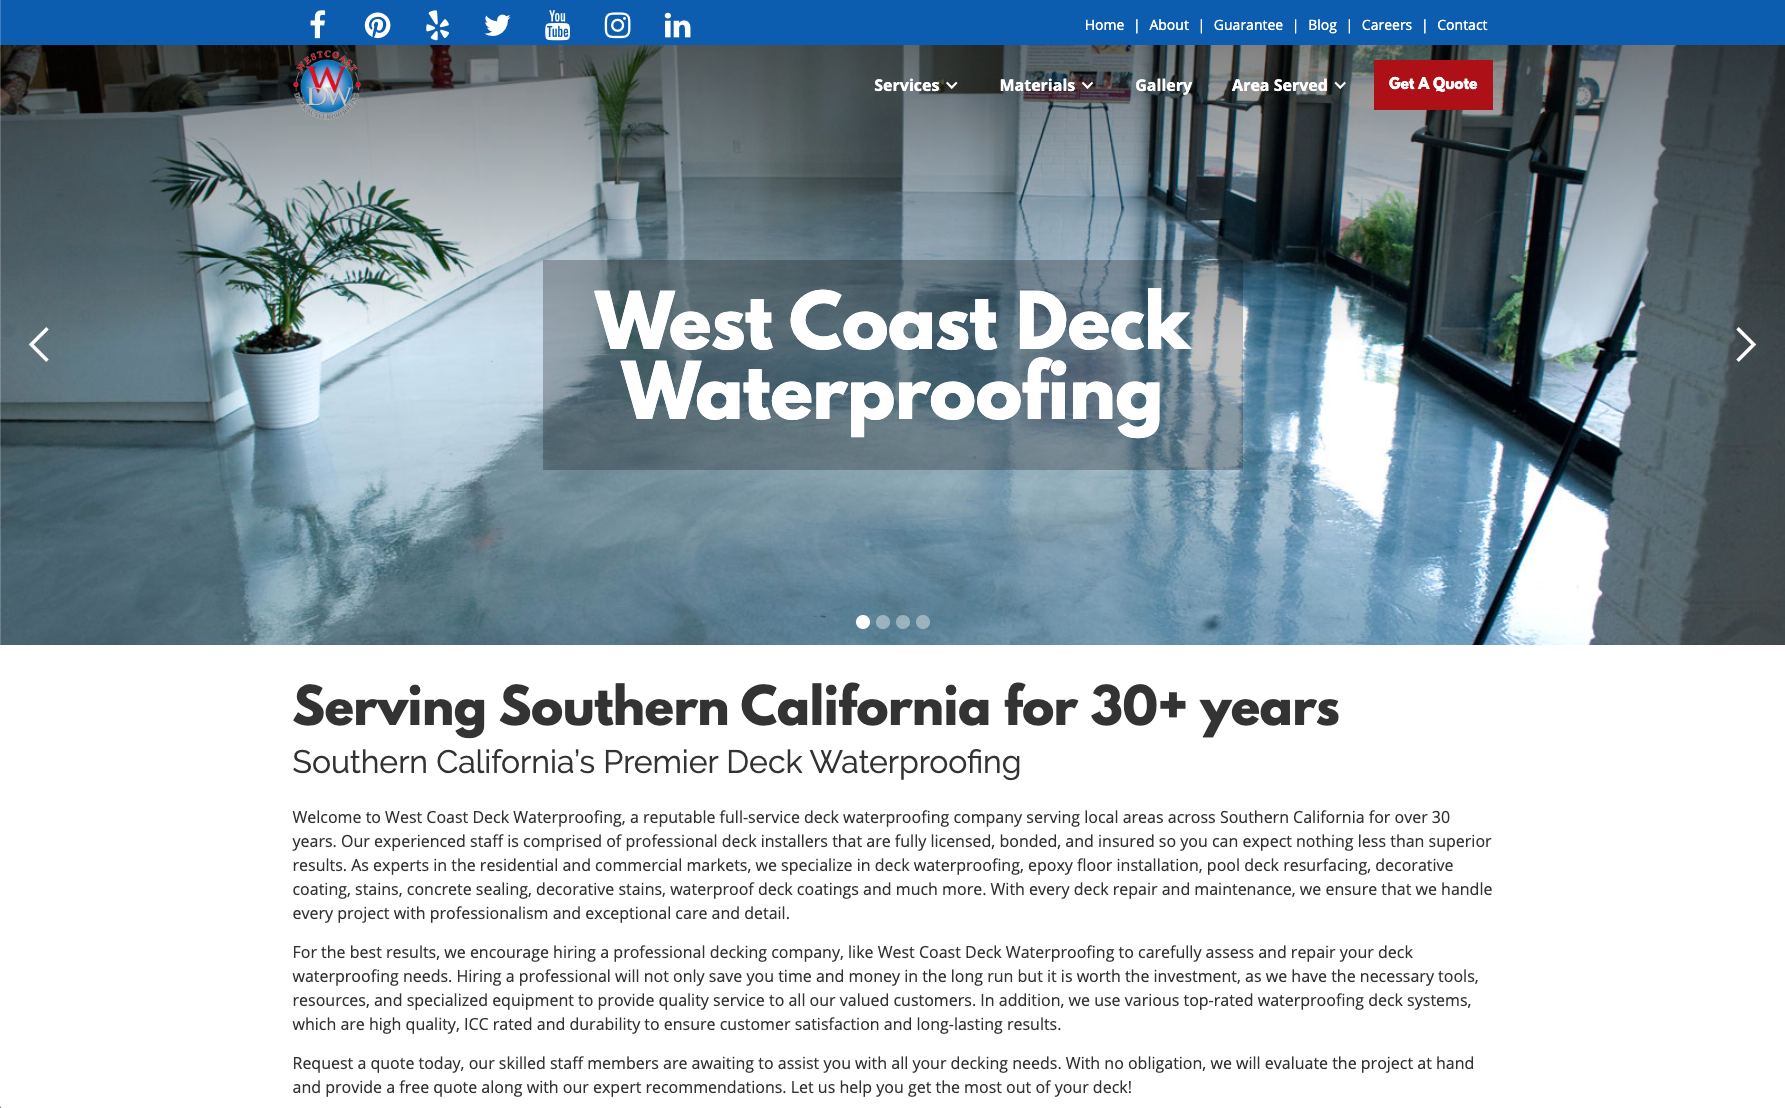 West Coast Deck Waterproofingwebsite across screens